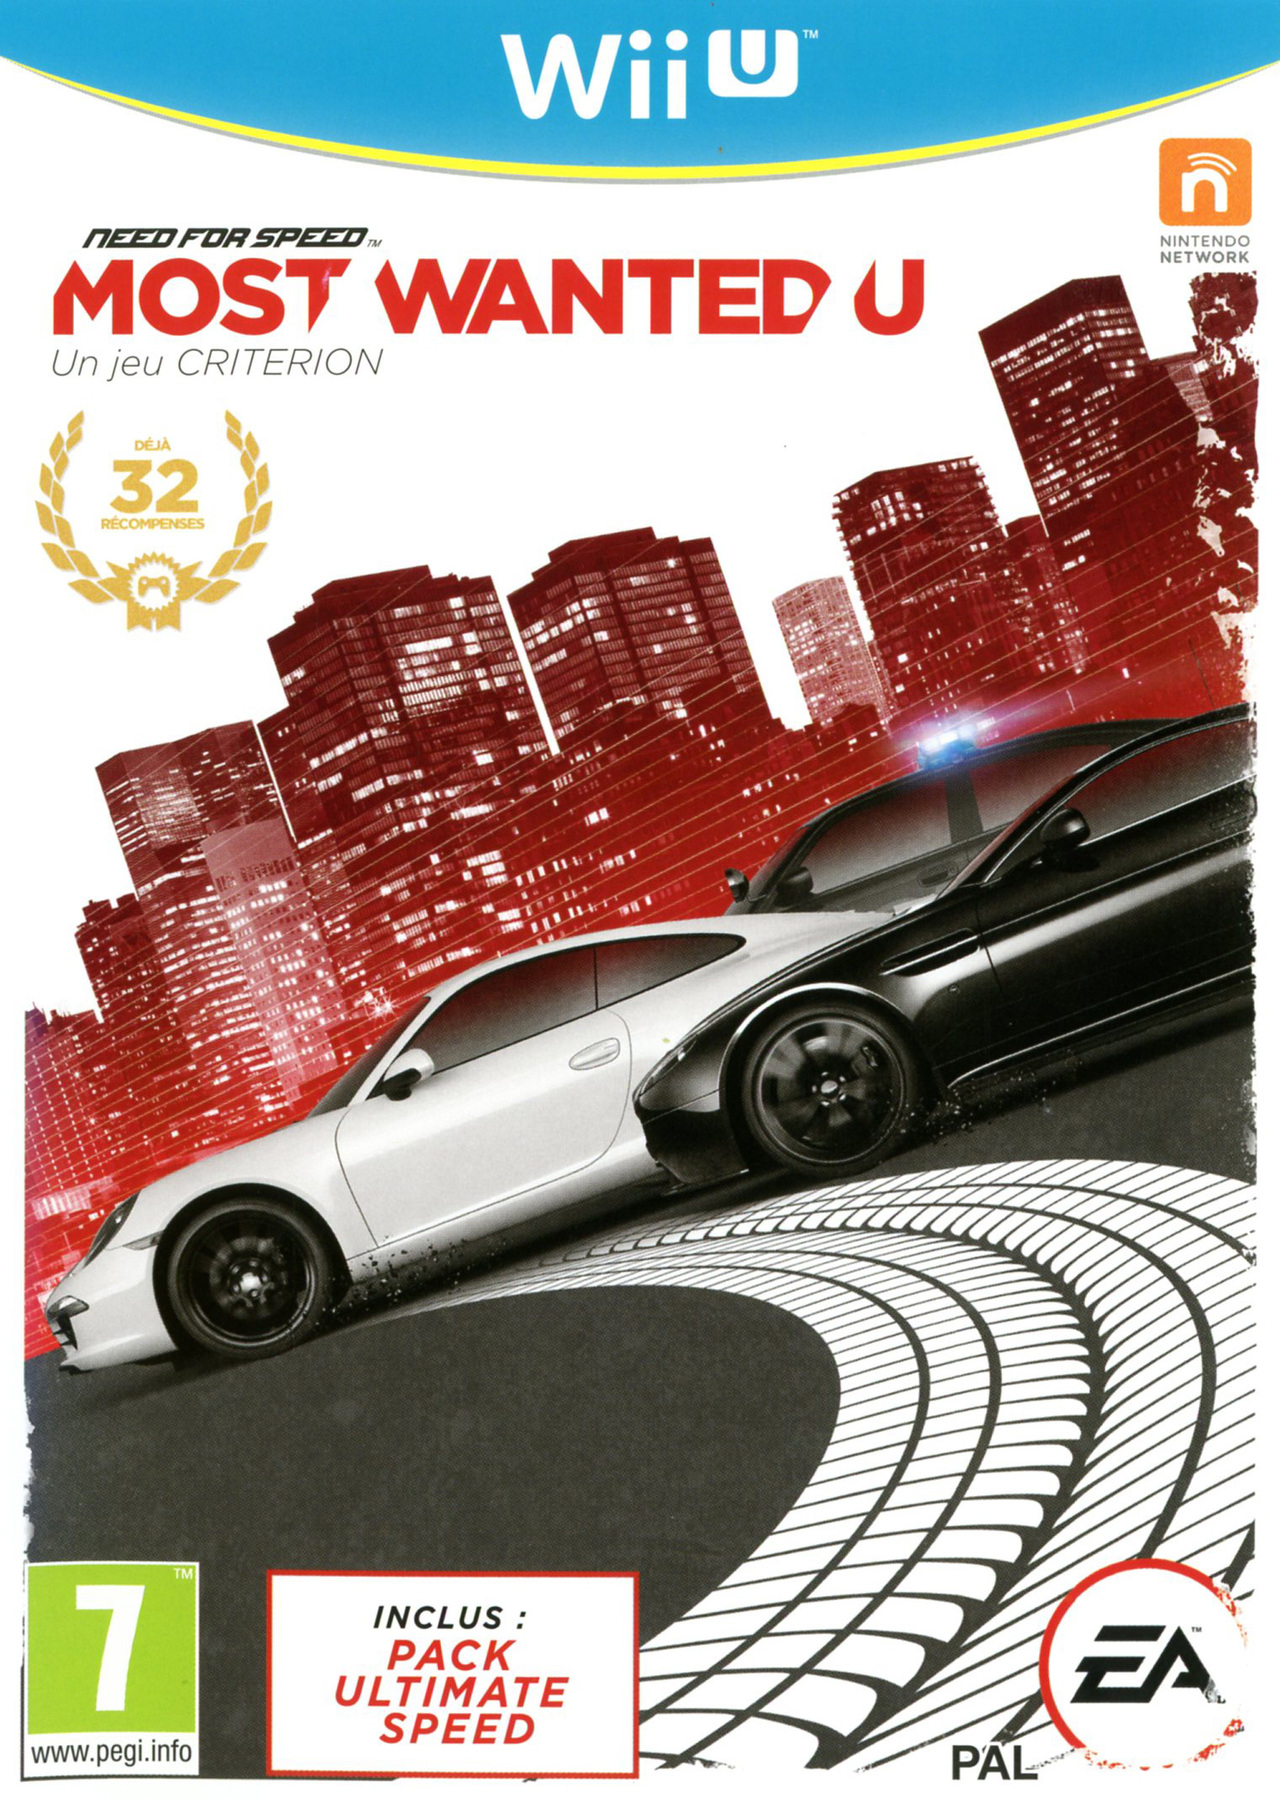 need-for-speed-most-wanted-wii-u